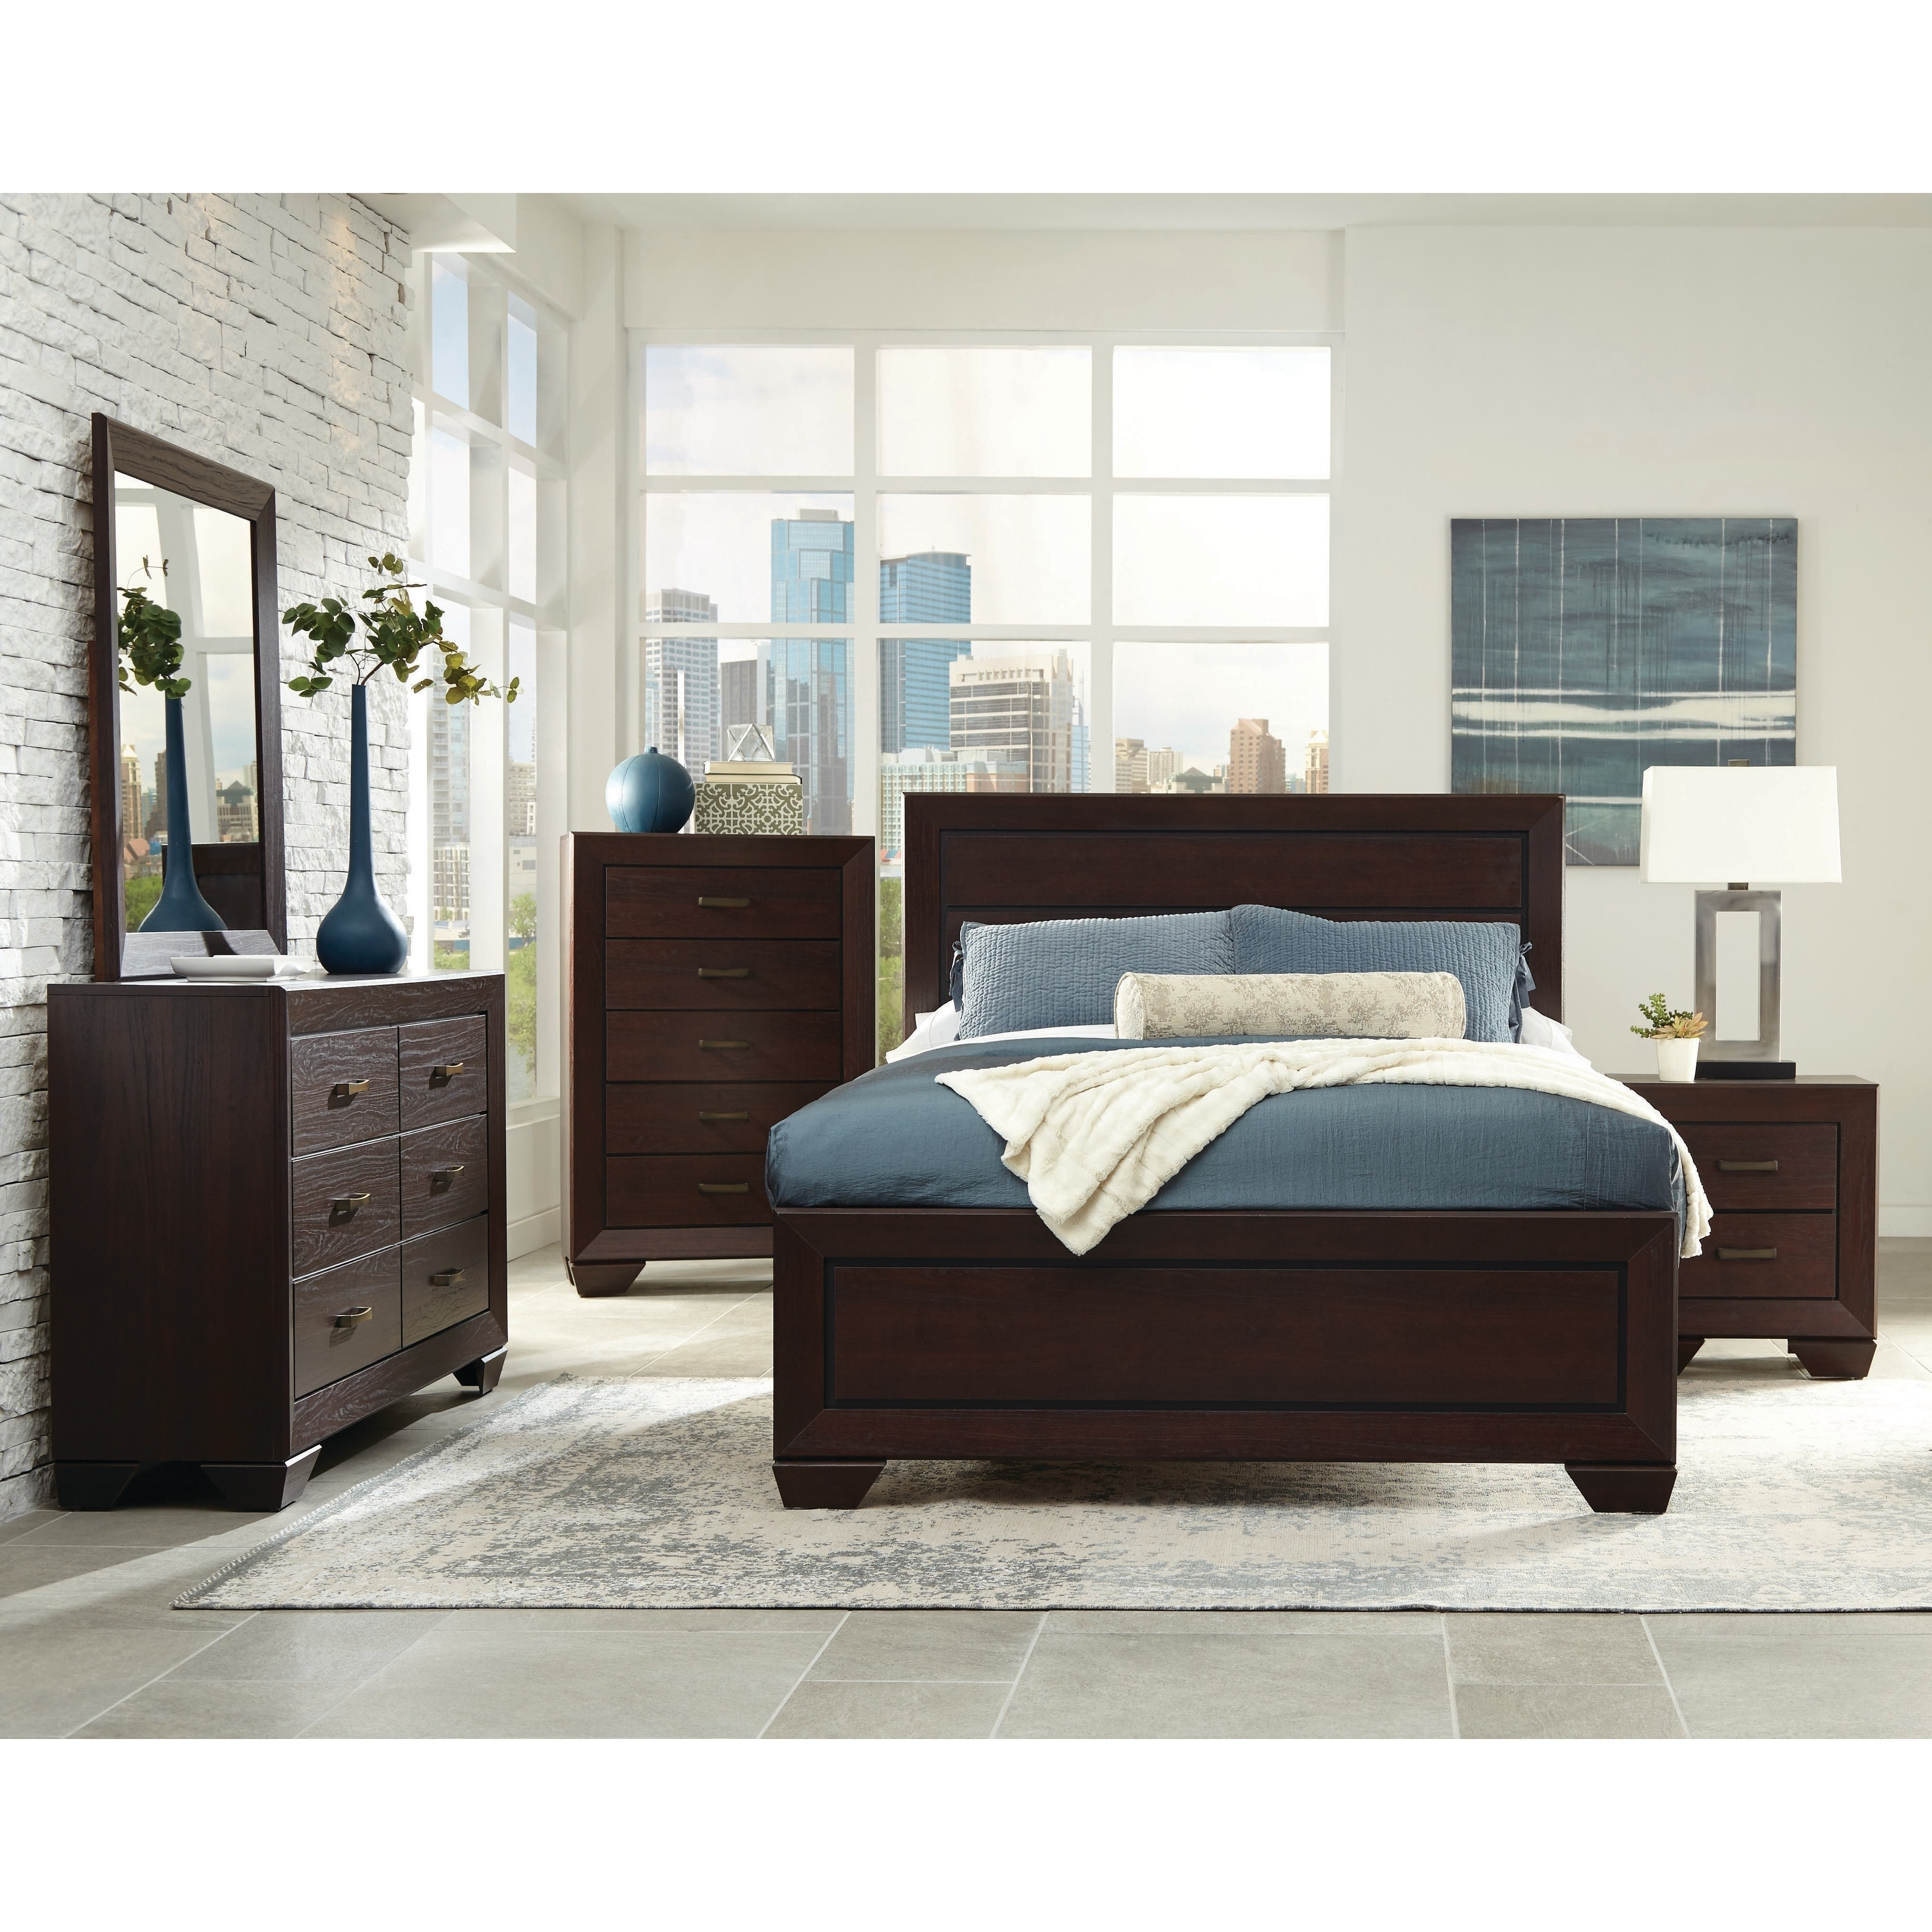 Strick & Bolton Dulah Dark Cocoa 4-piece Bedroom Set with Storage Bed